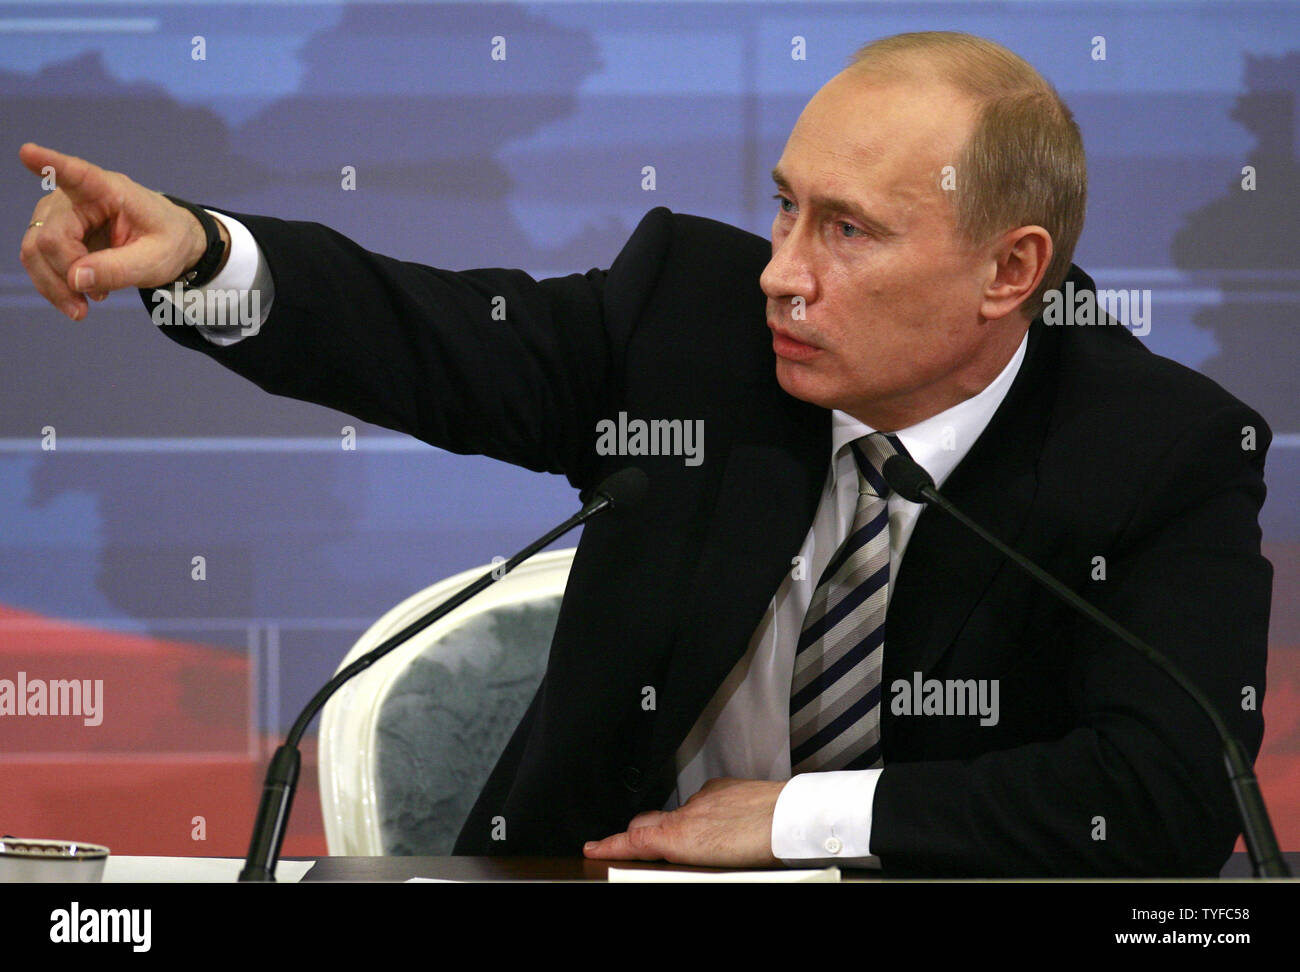 Russian President Vladimir Putin speaks during his final annual news conference in the Kremlin in Moscow on February 14, 2008. Putin confirmed Thursday his intention to wield significant power as premier when he leaves the Kremlin after next month's presidential election. (UPI Photo/Anatoli Zhdanov) - Stock Image